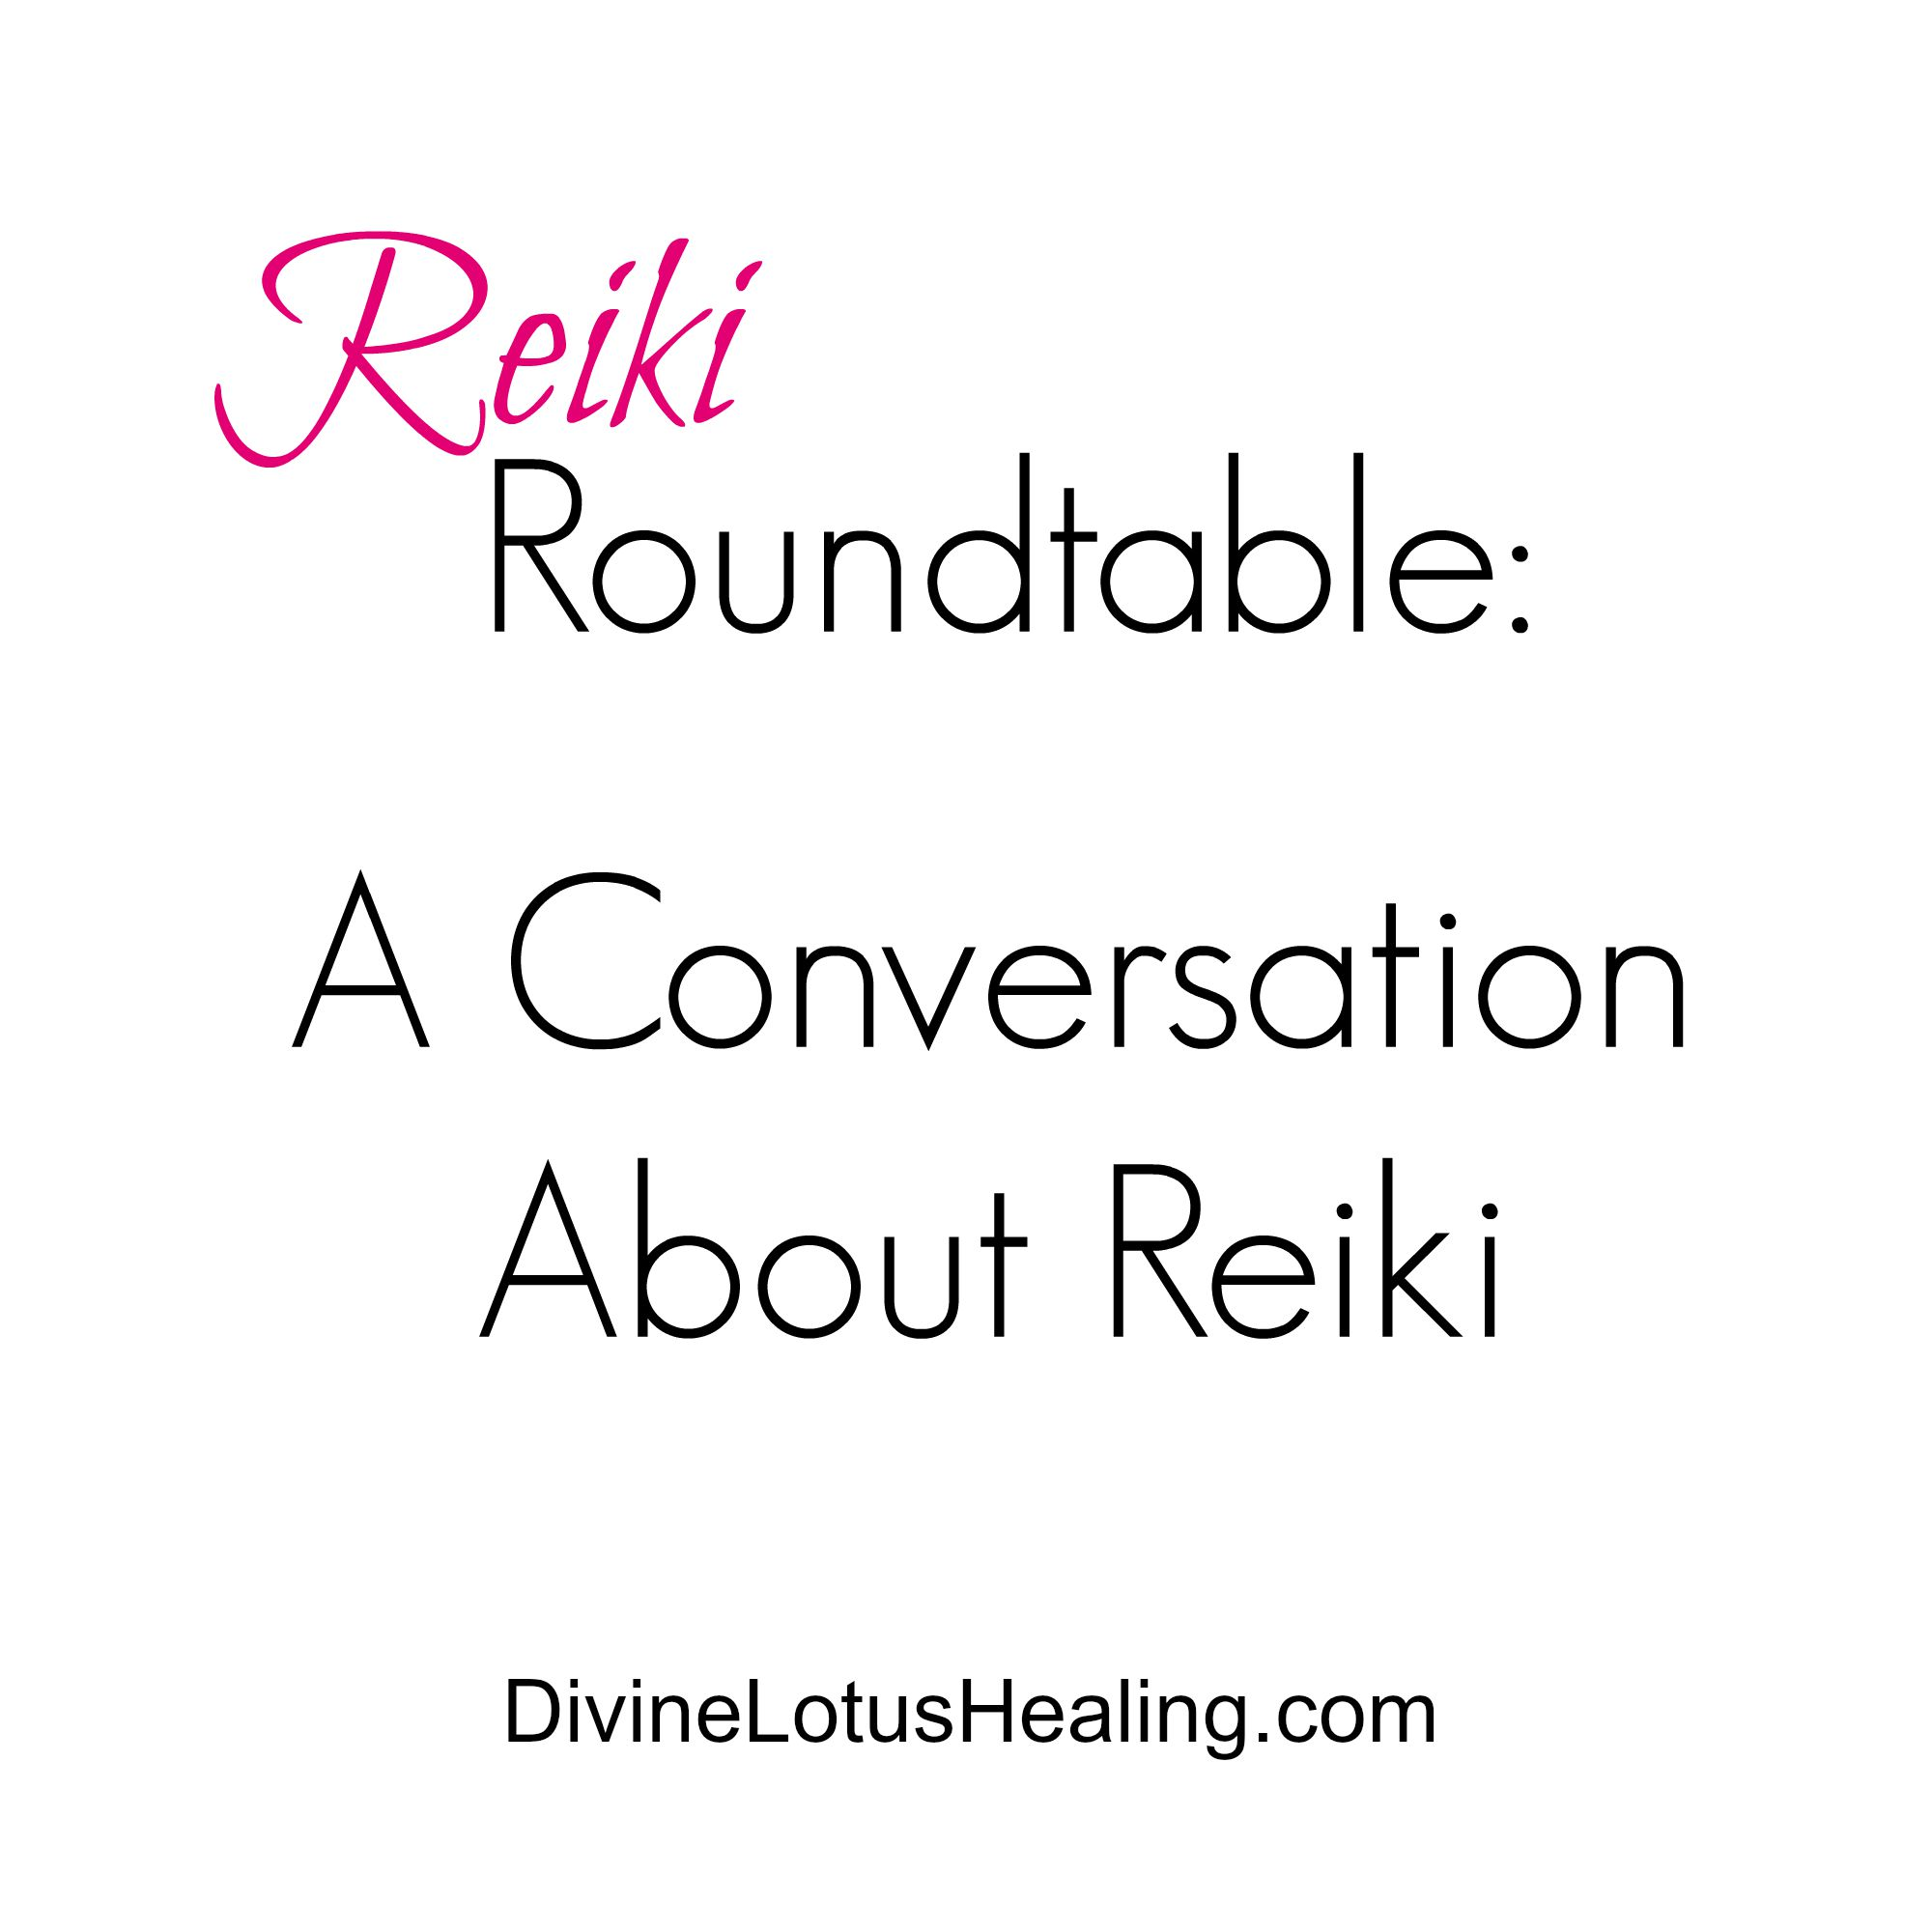 Divine Lotus Healing | Reiki Roundtable A Conversation About Reiki